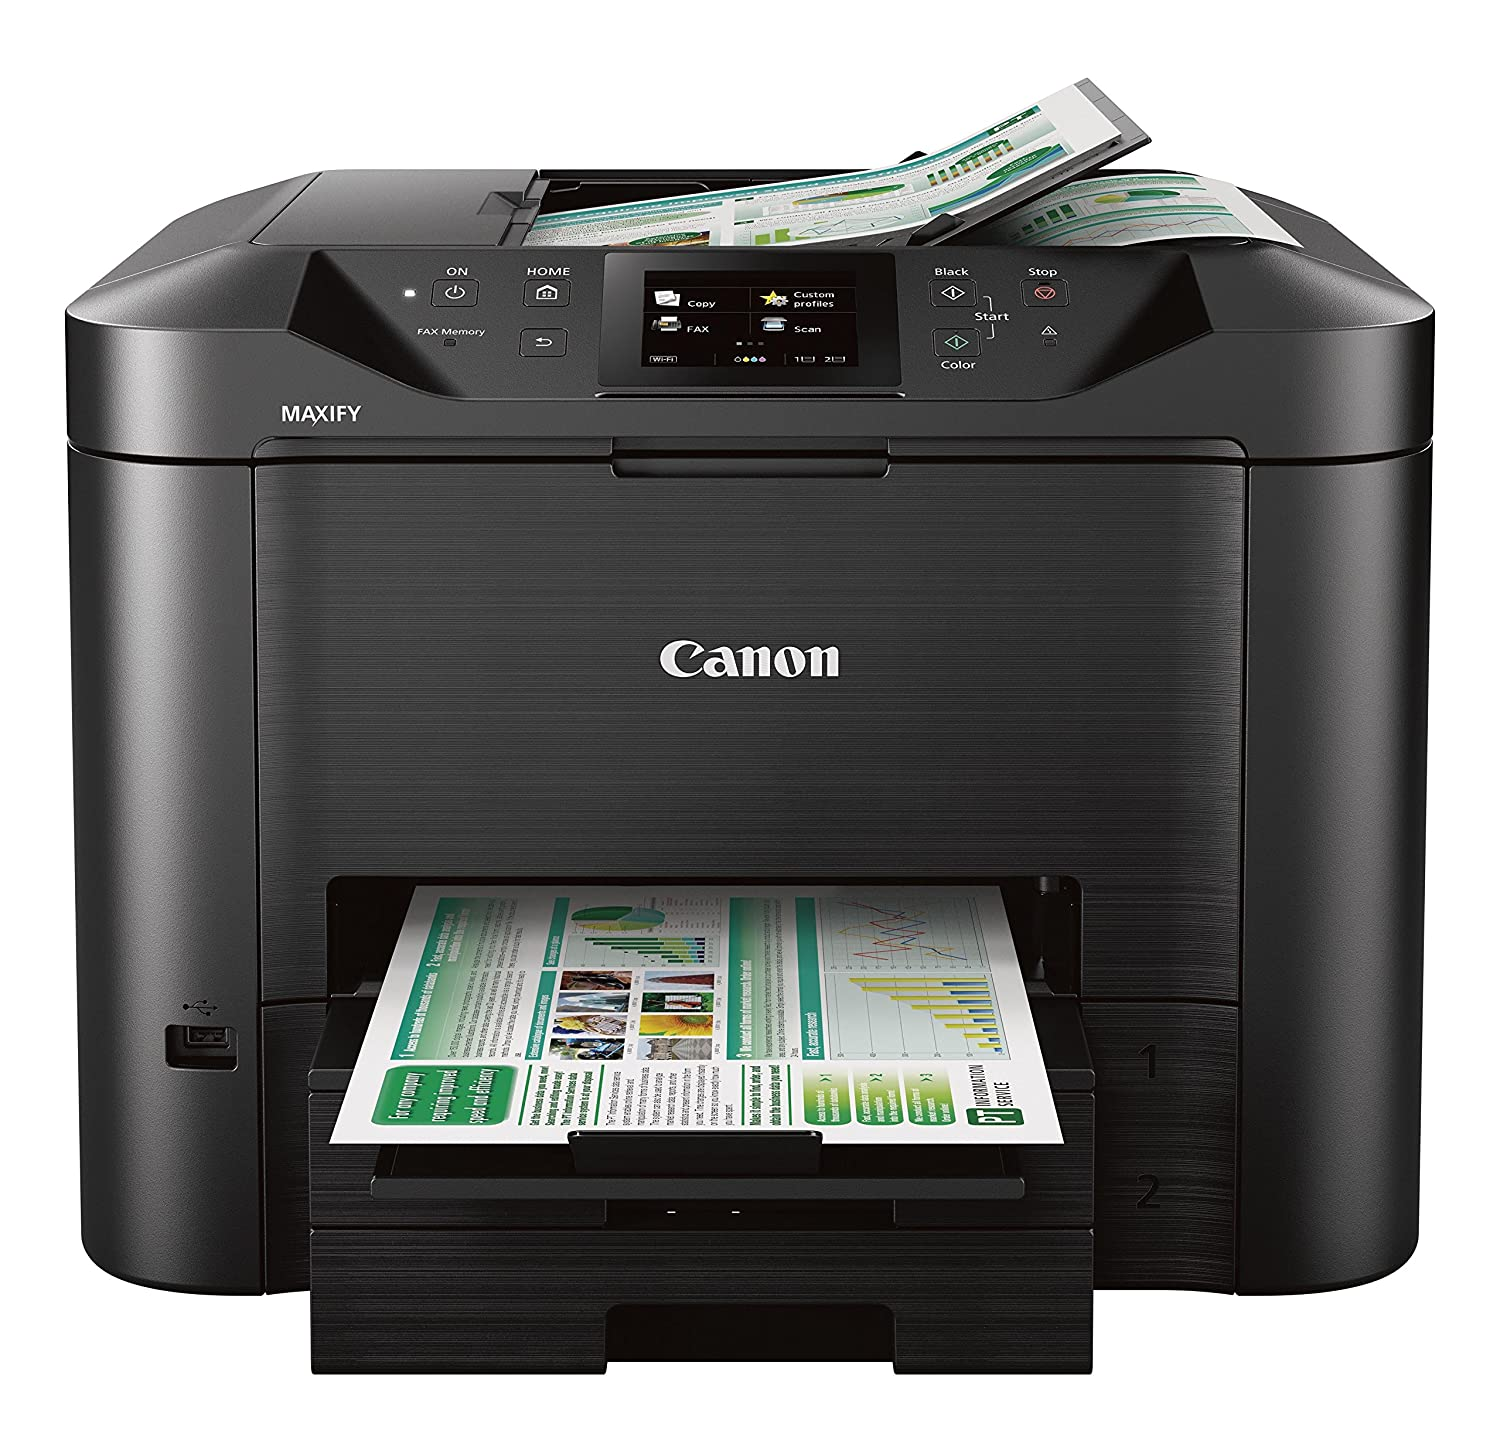 Canon Office and Business MB5420 Wireless All-in-One Printer,Scanner, Copier and Fax, with Mobile and Duplex Printing Canon USA Inc.